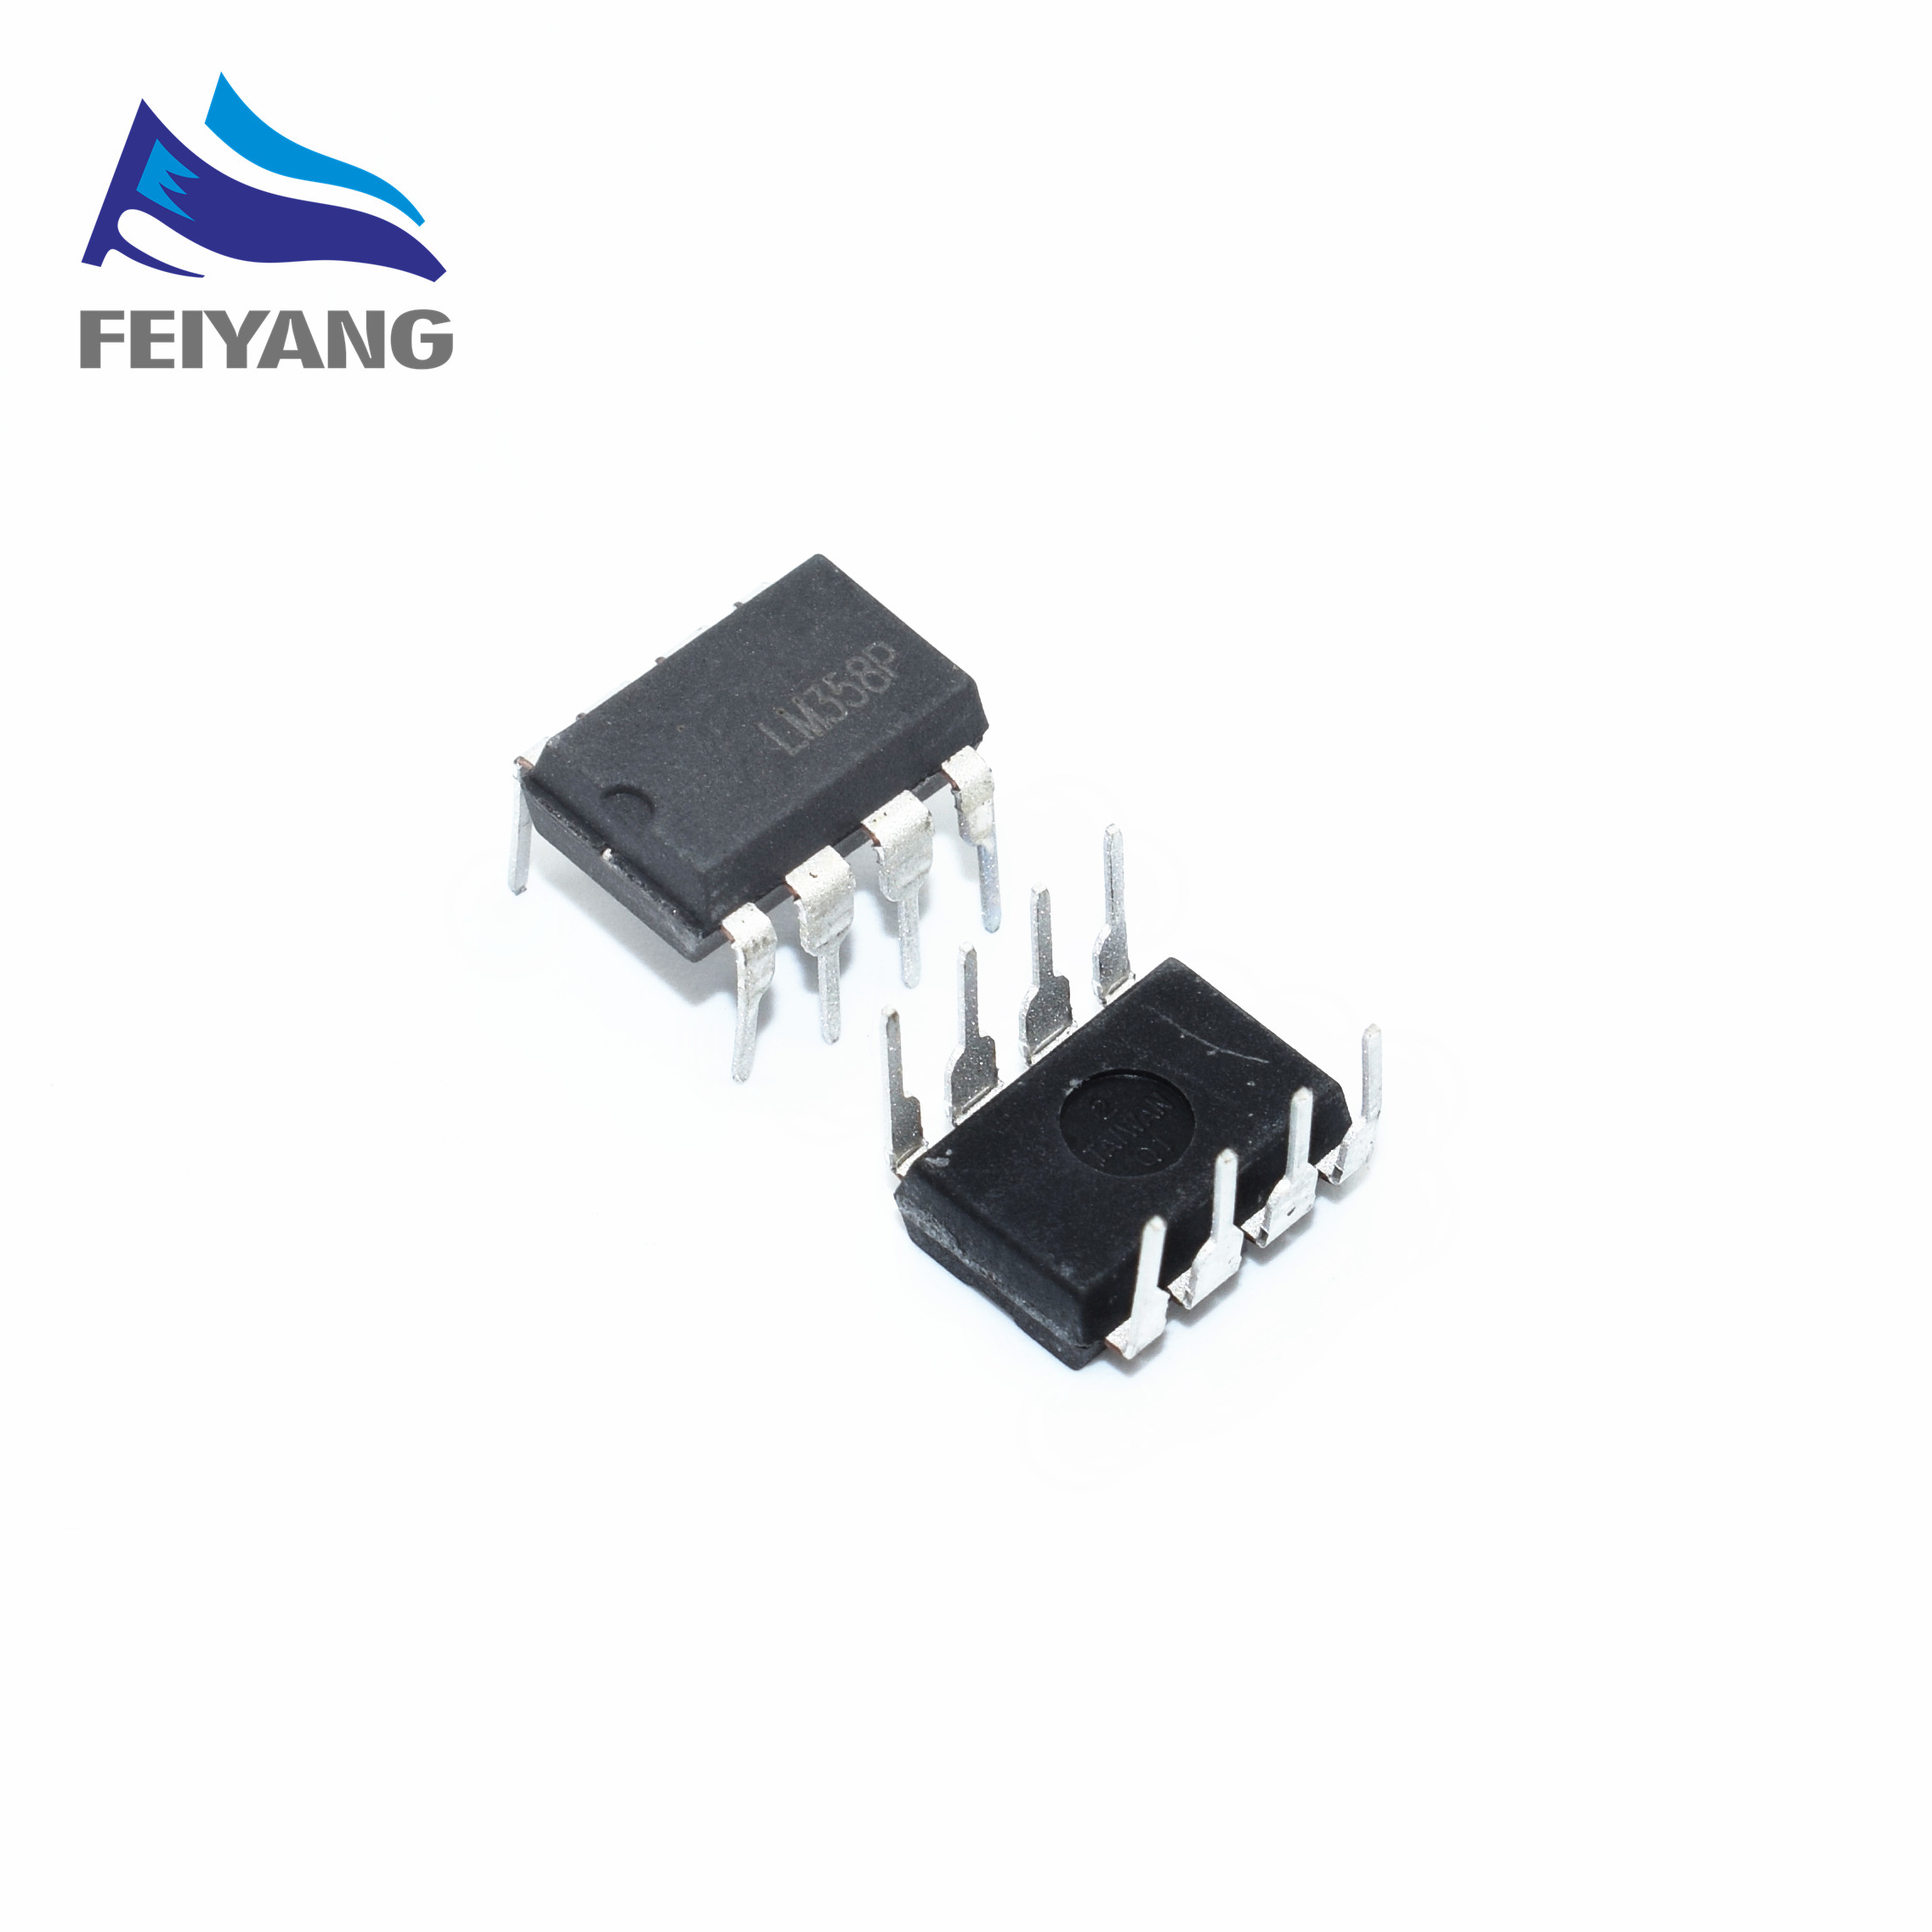 Buy Ic Lm358 And Get Free Shipping On Noninverting Amplifier Lm358n Page 2